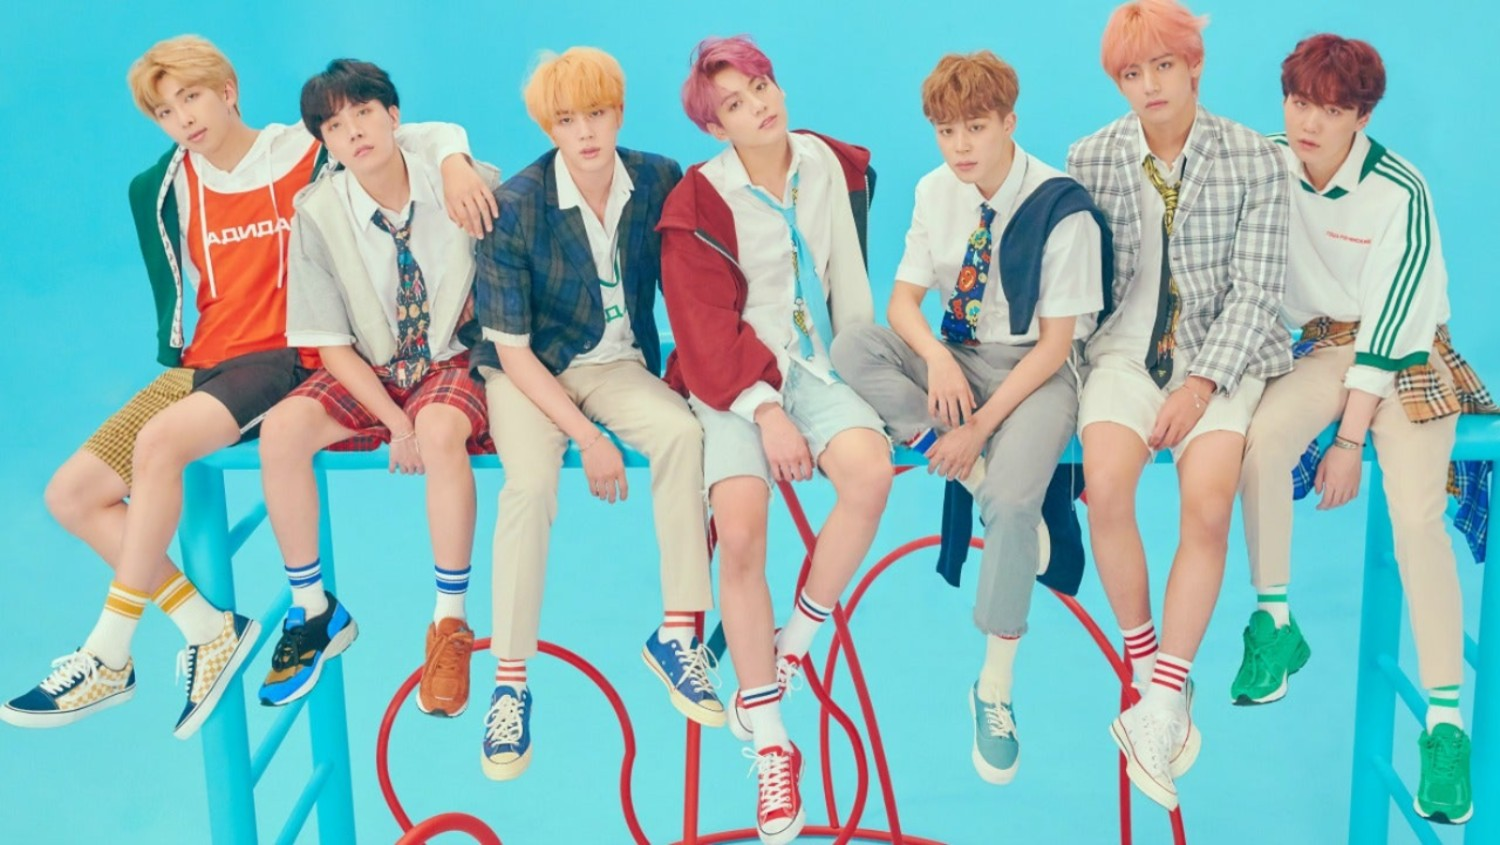 You've listened to all their albums on repeat, but can you remember the lyrics to BTS' biggest songs? Take our quiz to find out!